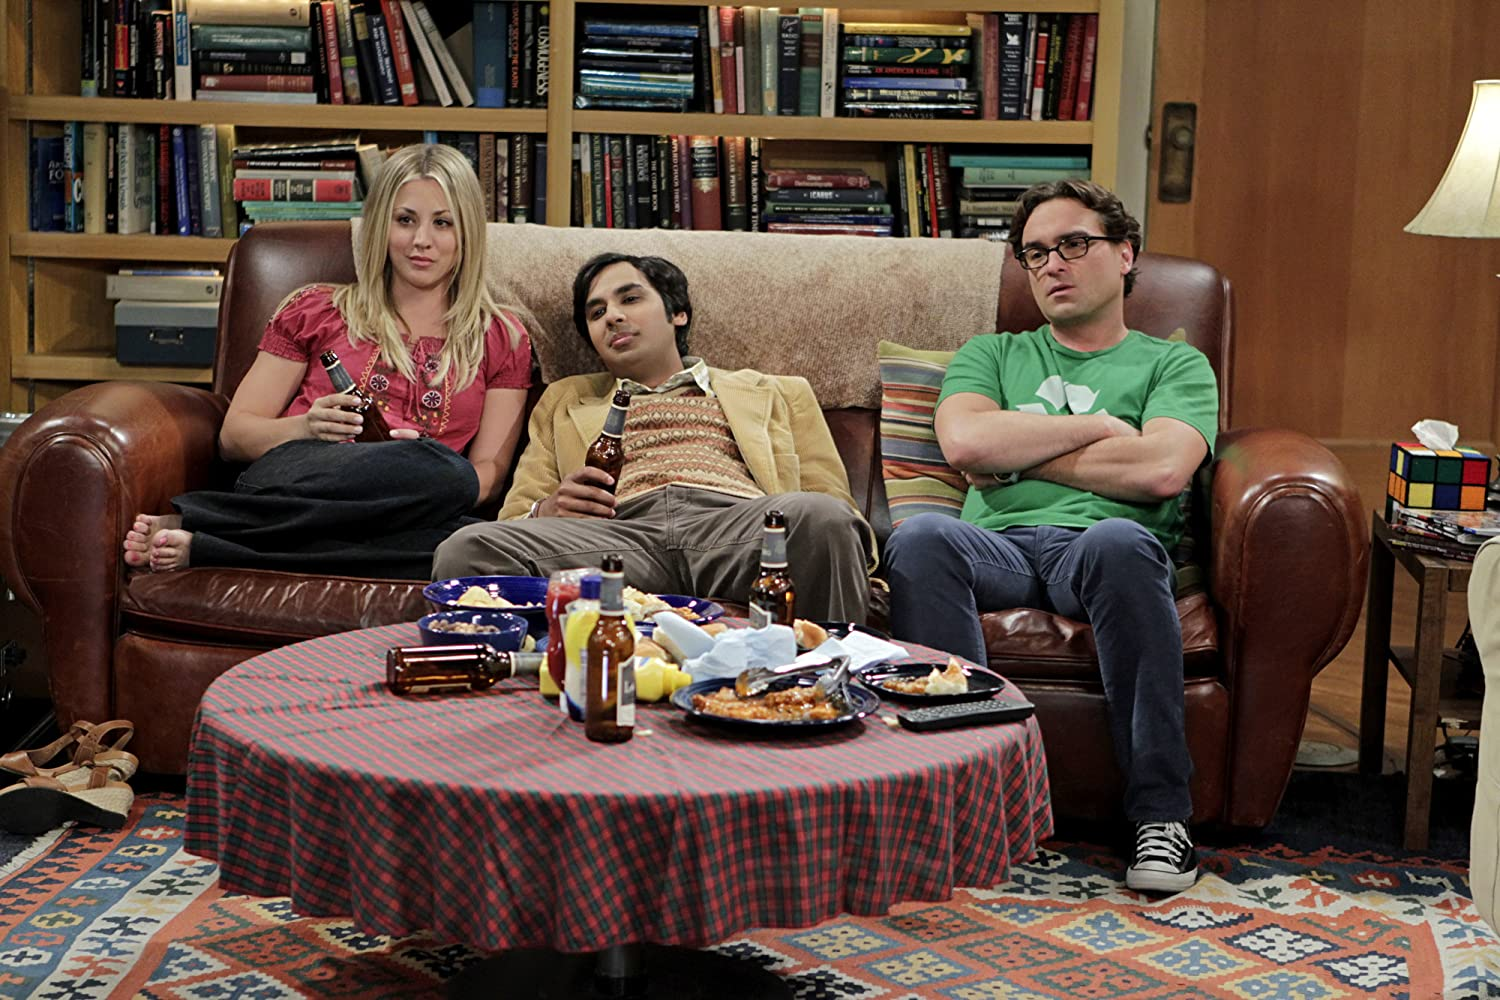 Kaley Cuoco, Johnny Galecki, and Kunal Nayyar in The Big Bang Theory (2007)